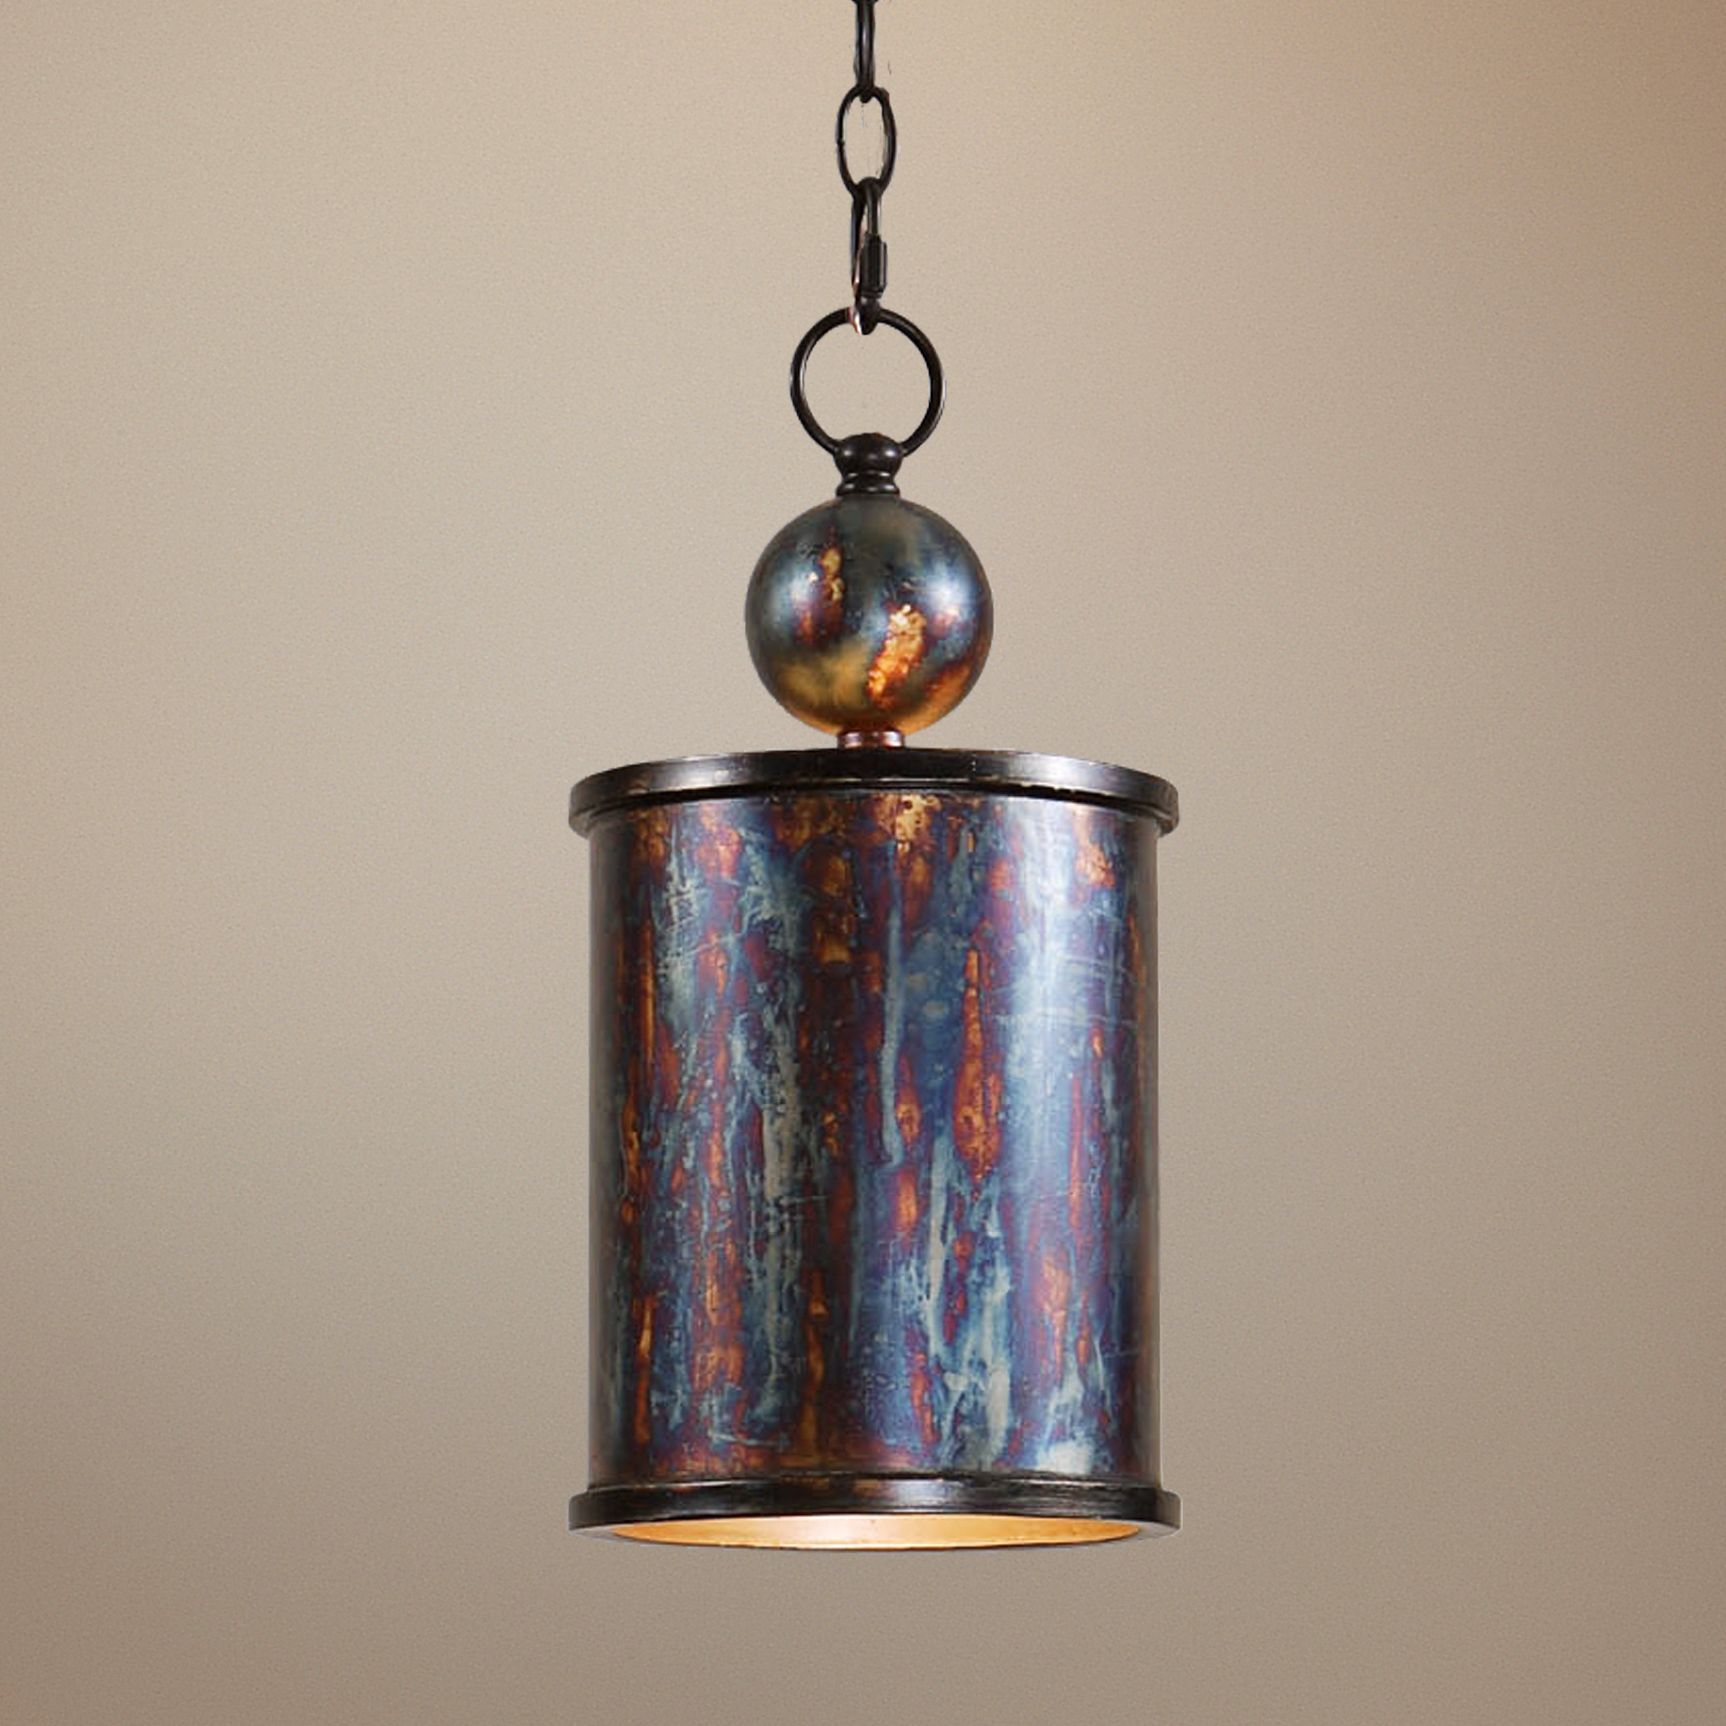 Uttermost Albiano Cylindrical 1-Light Mini Pendant & Uttermost Mini-Pendant Pendant Lighting | Lamps Plus azcodes.com